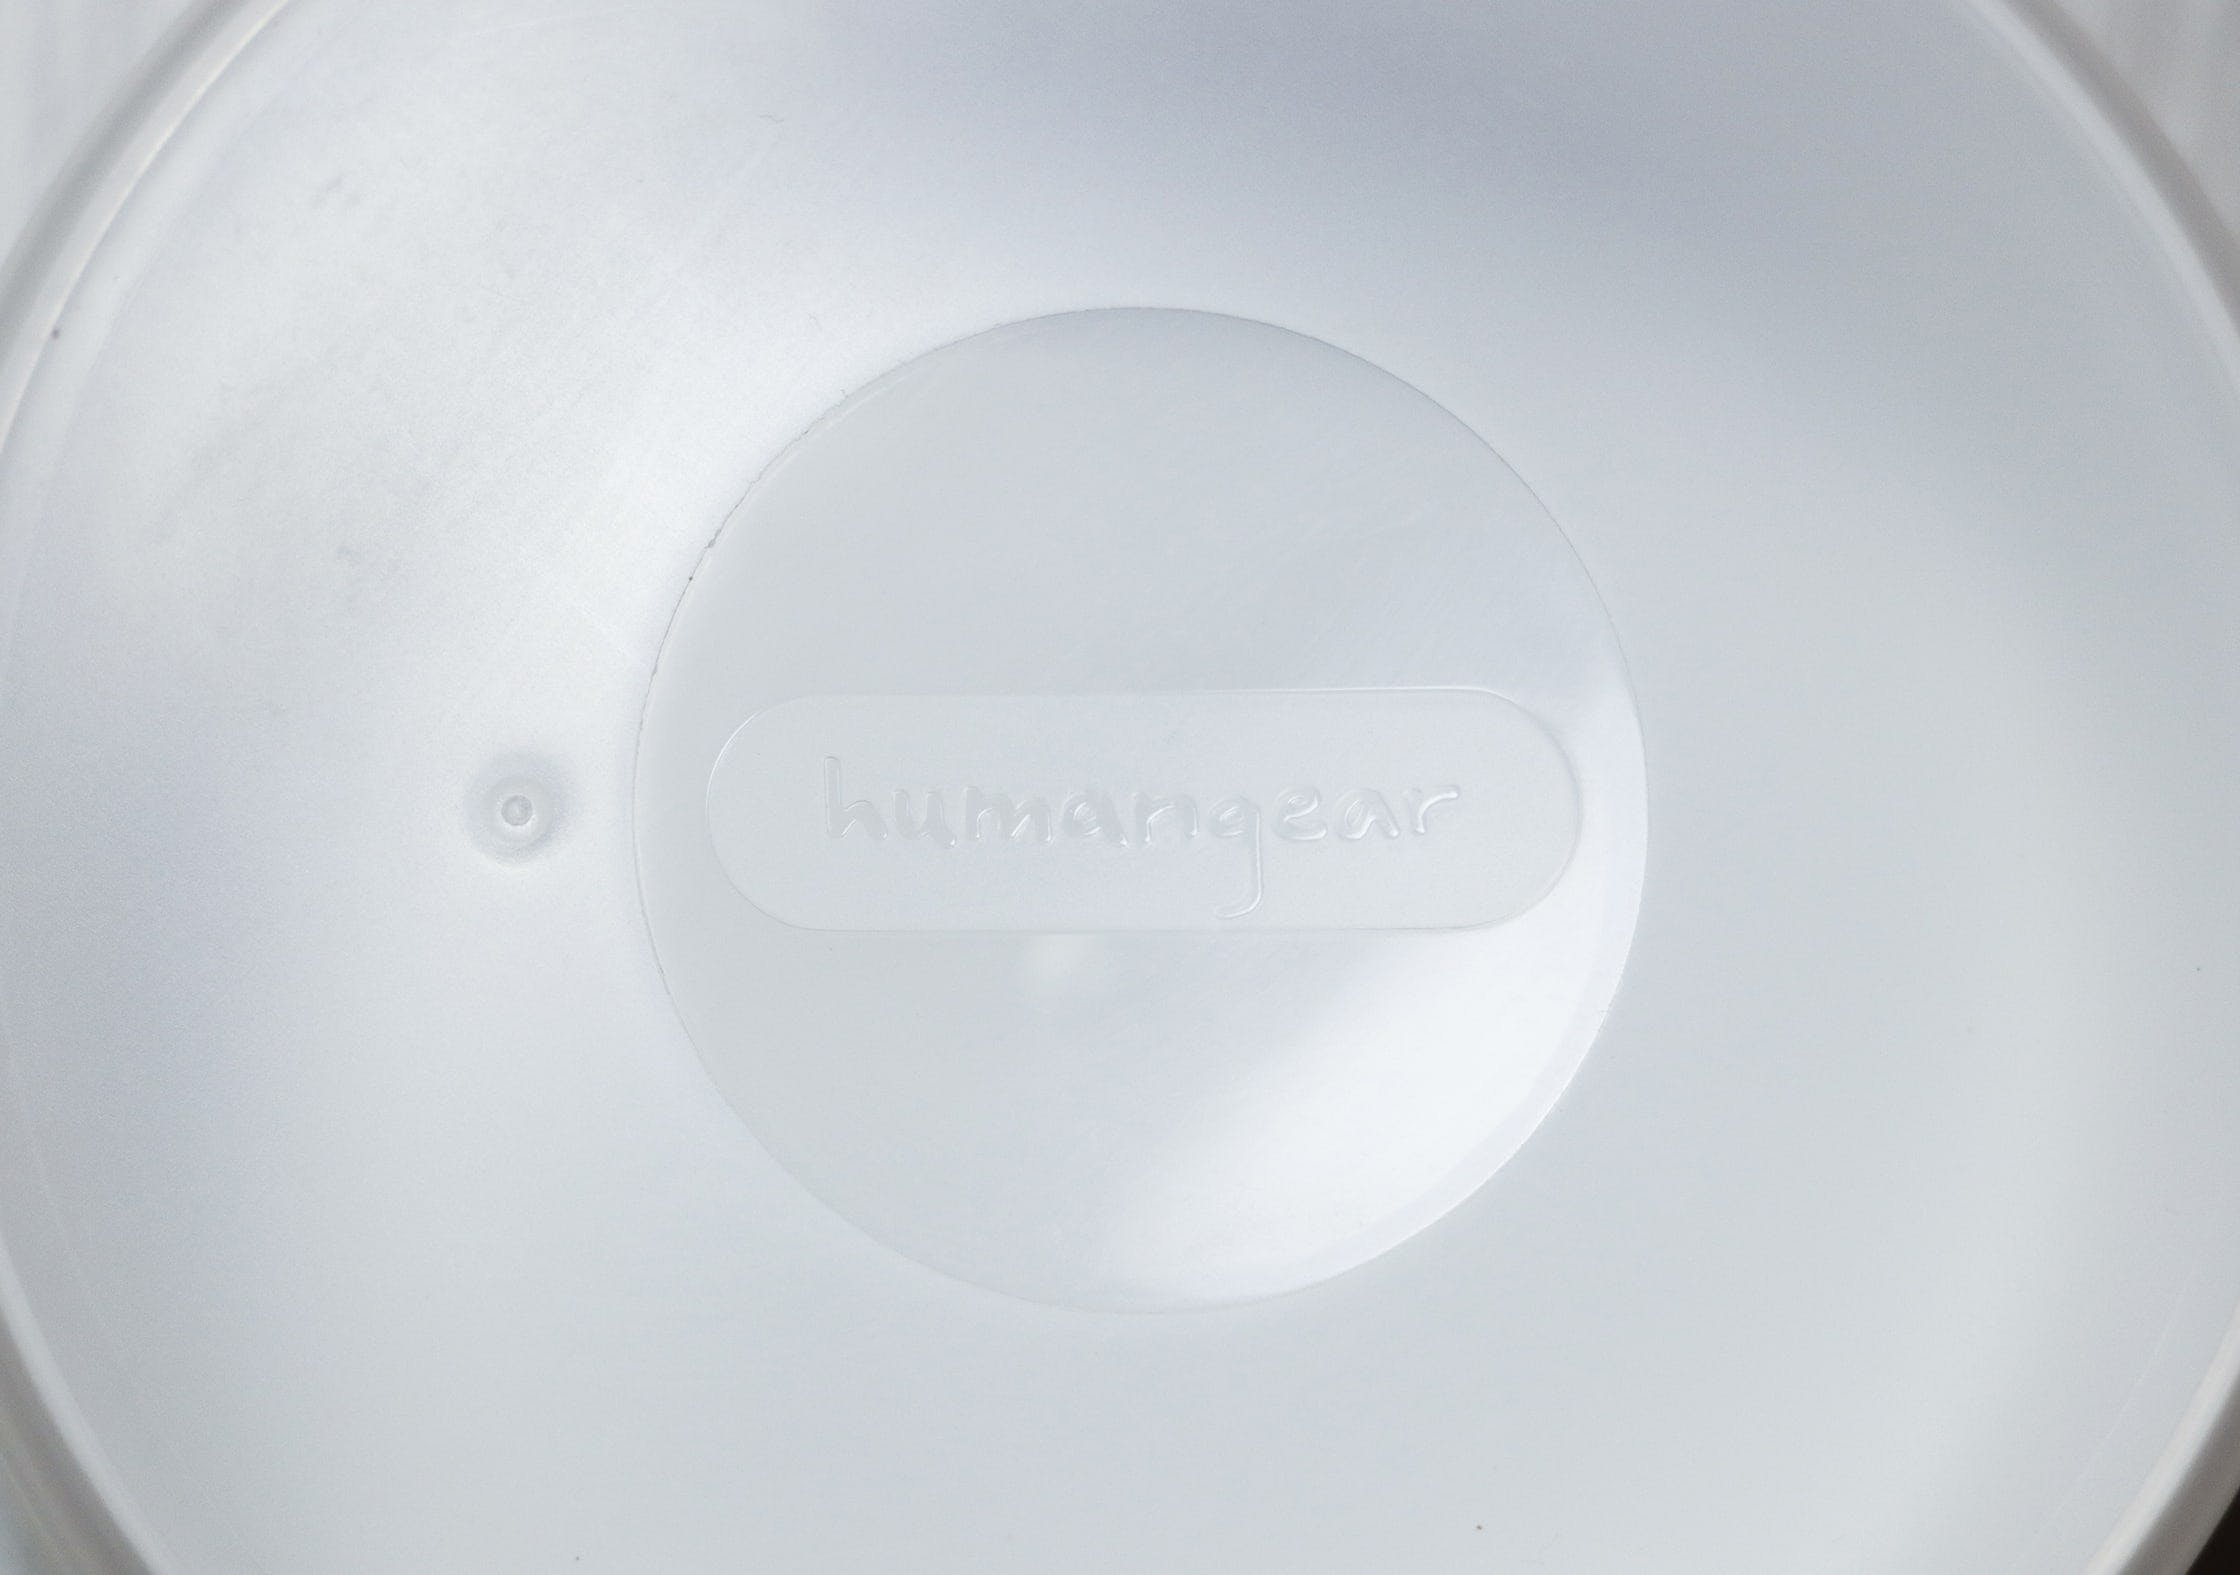 Humangear Logo On Top Of The GoTubb